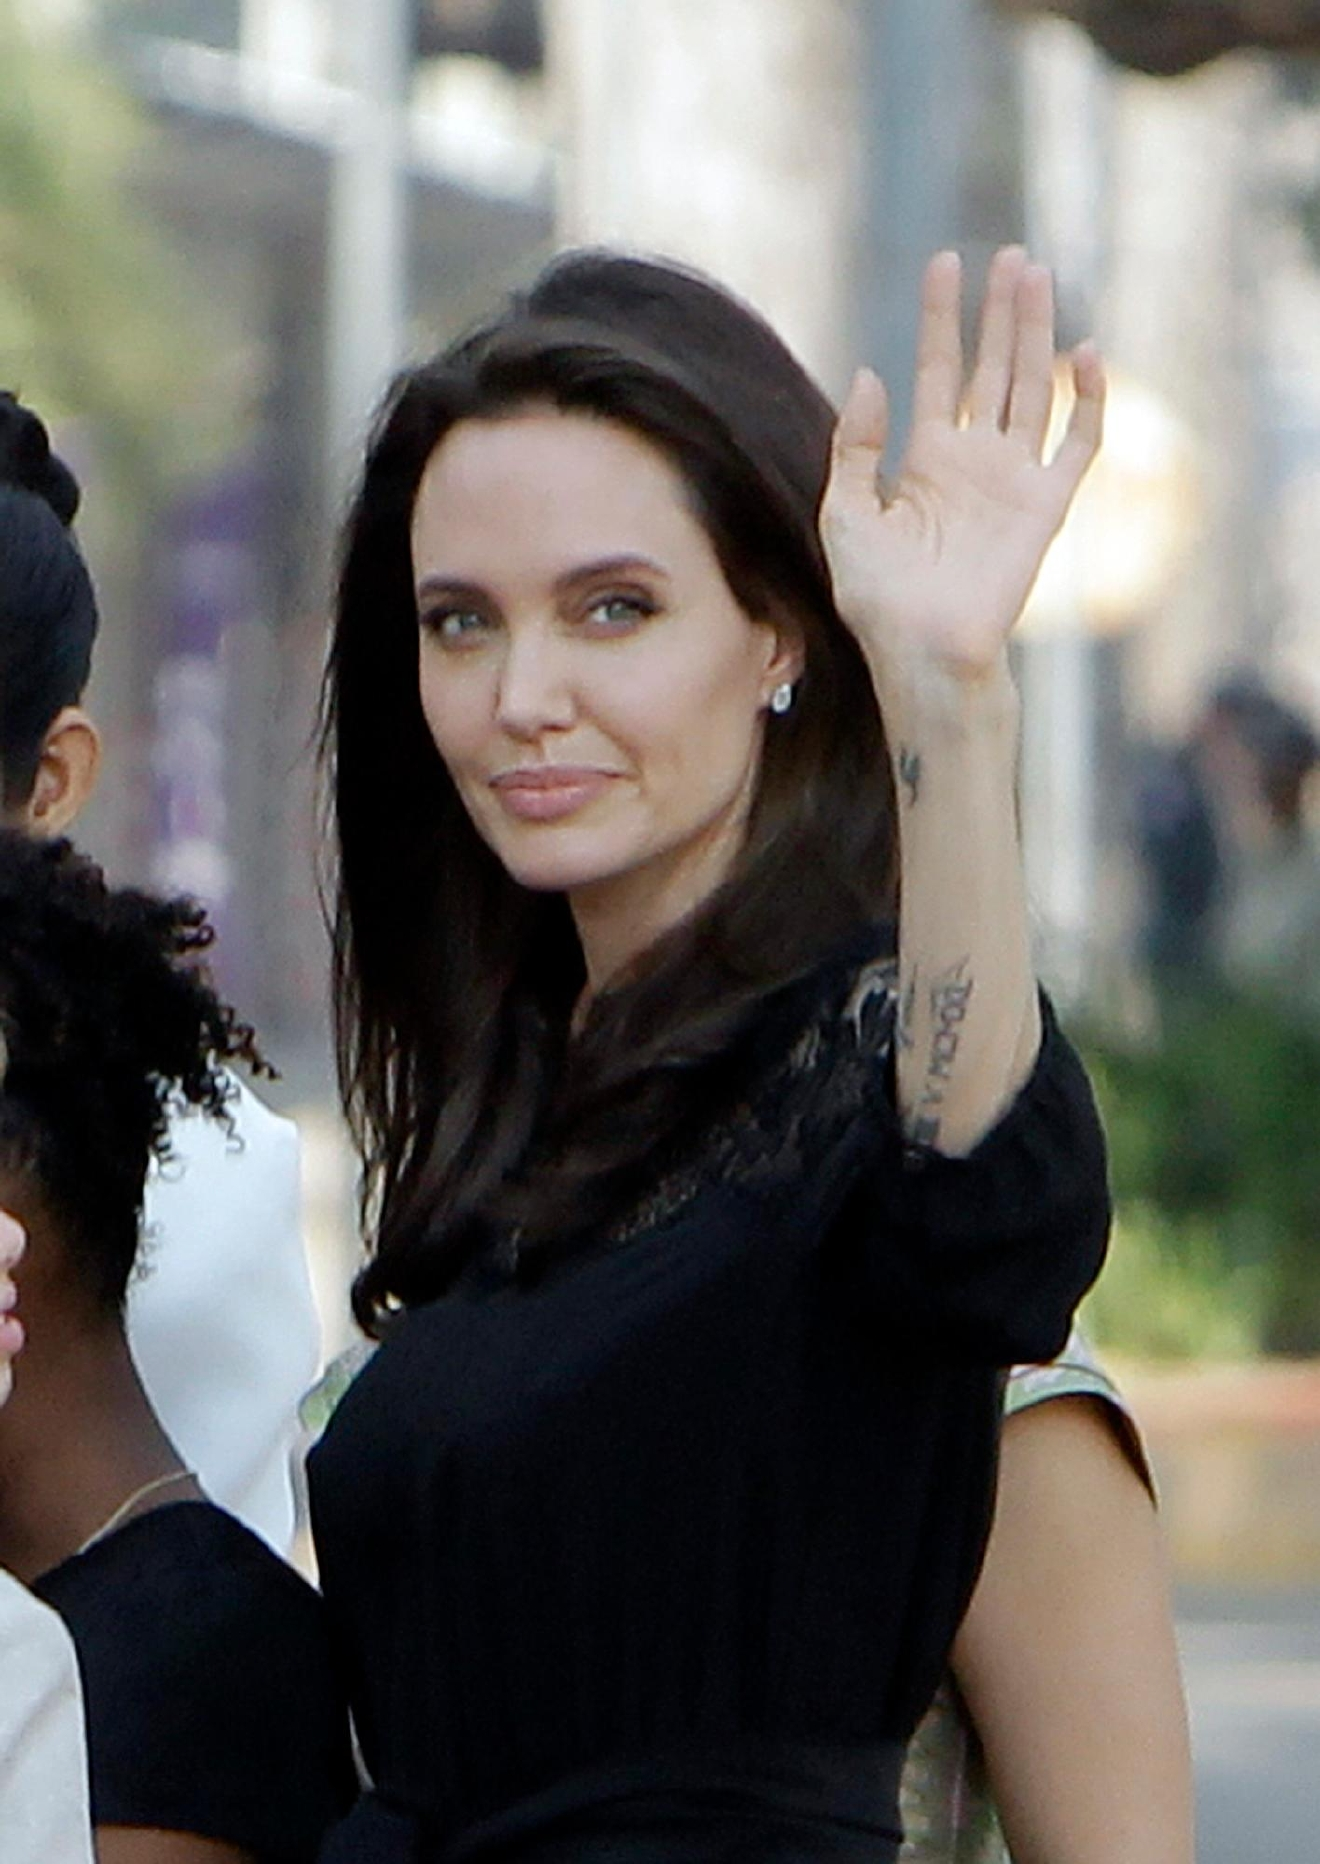 "Hollywood actress Angelina Jolie waves to visitors while she waits to meet Cambodia's King Norodom Sihamoni in Siem Reap, Cambodia, Saturday, Feb. 18, 2017. Jolie on Saturday launches her two-day film screening of ""First They Killed My Father"" in the Angkor complex in Siem Reap province. (AP Photo/Heng Sinith)"